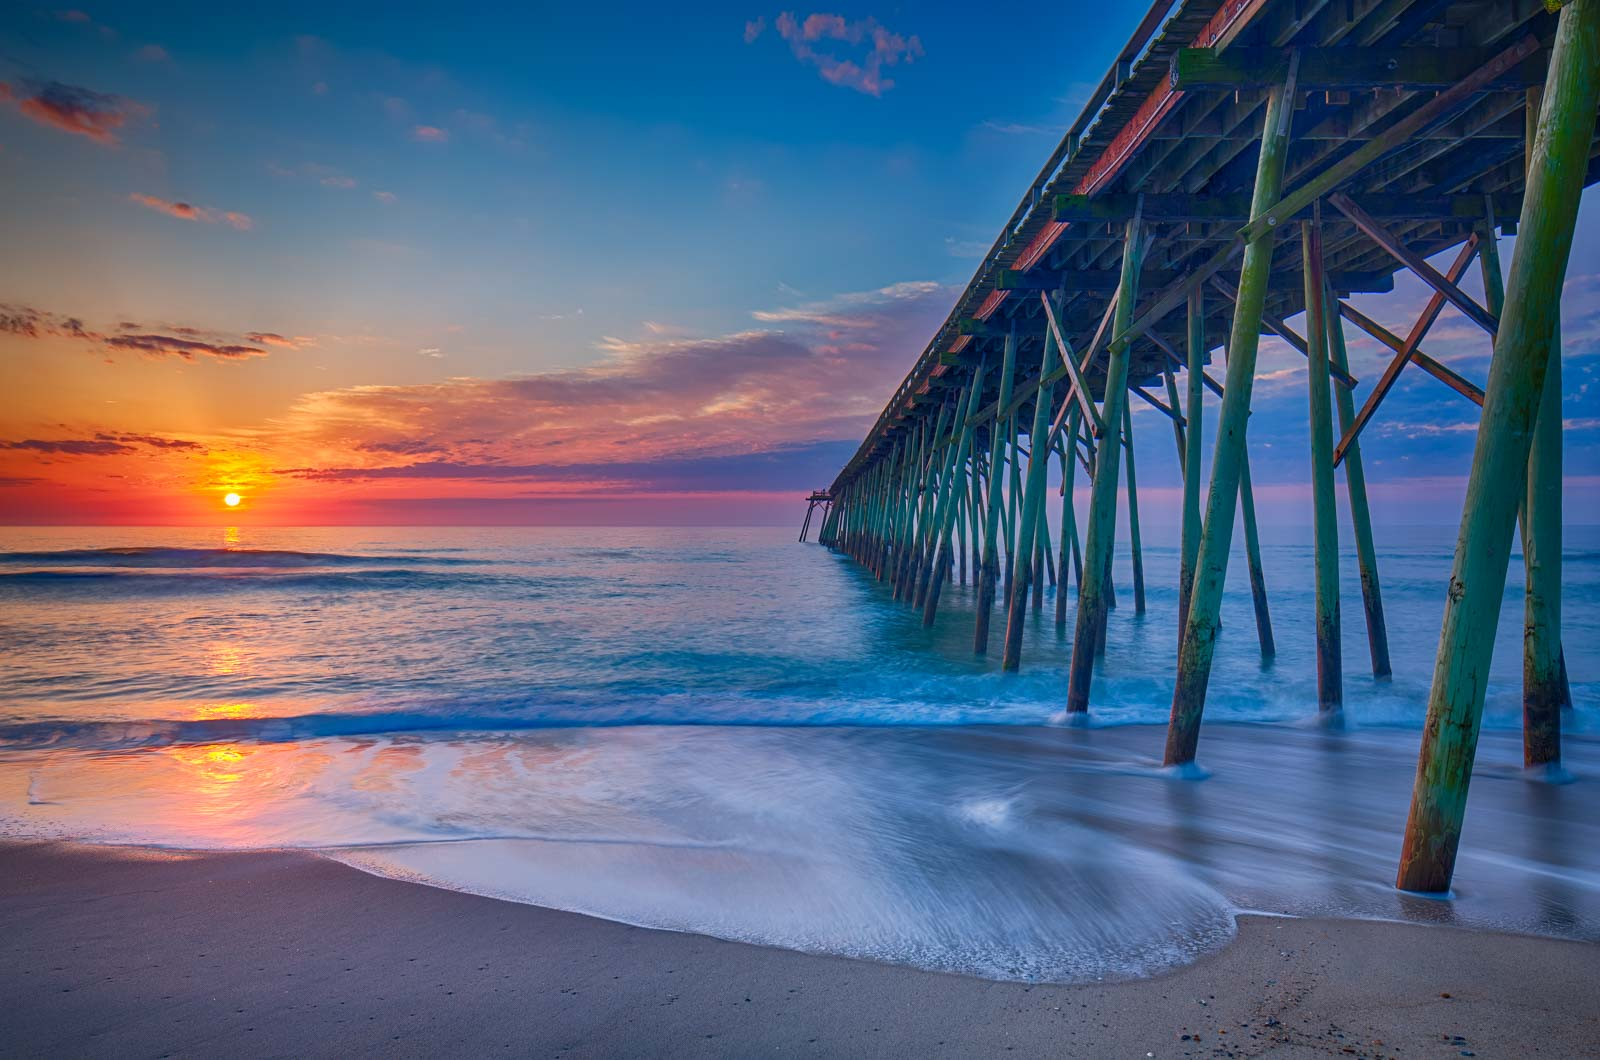 The Kure Beach Pier at Sunrise, Carolina Beach North Carolina. This Pier is a favorite place for people to fish and just simply...